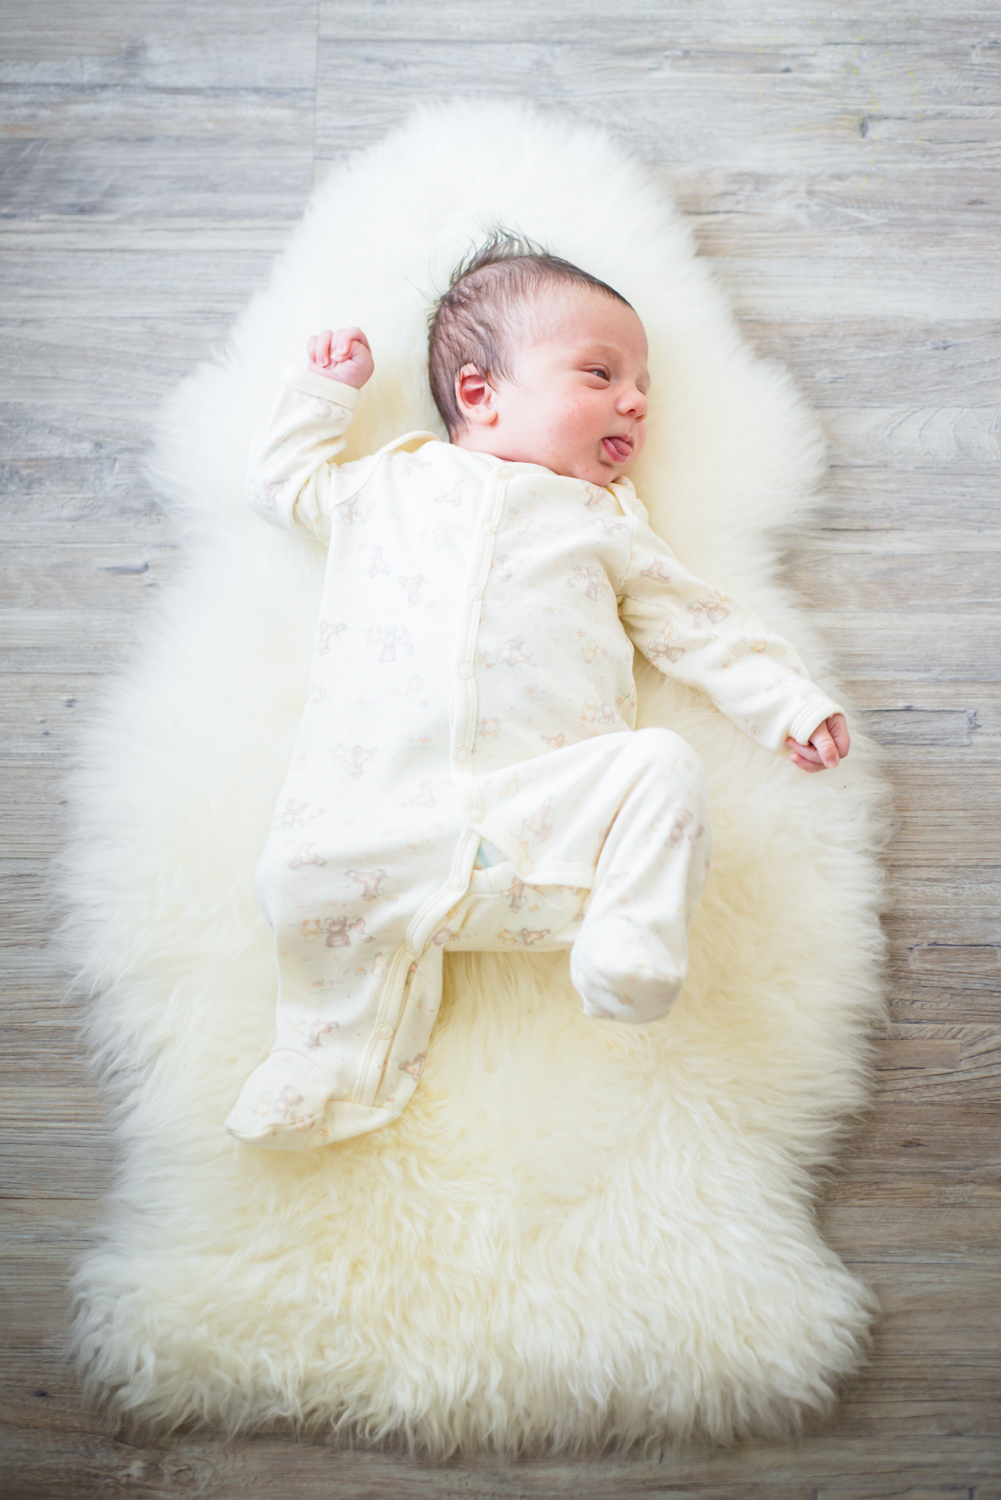 Jack Everett is 1 Month Old - Newborn Update